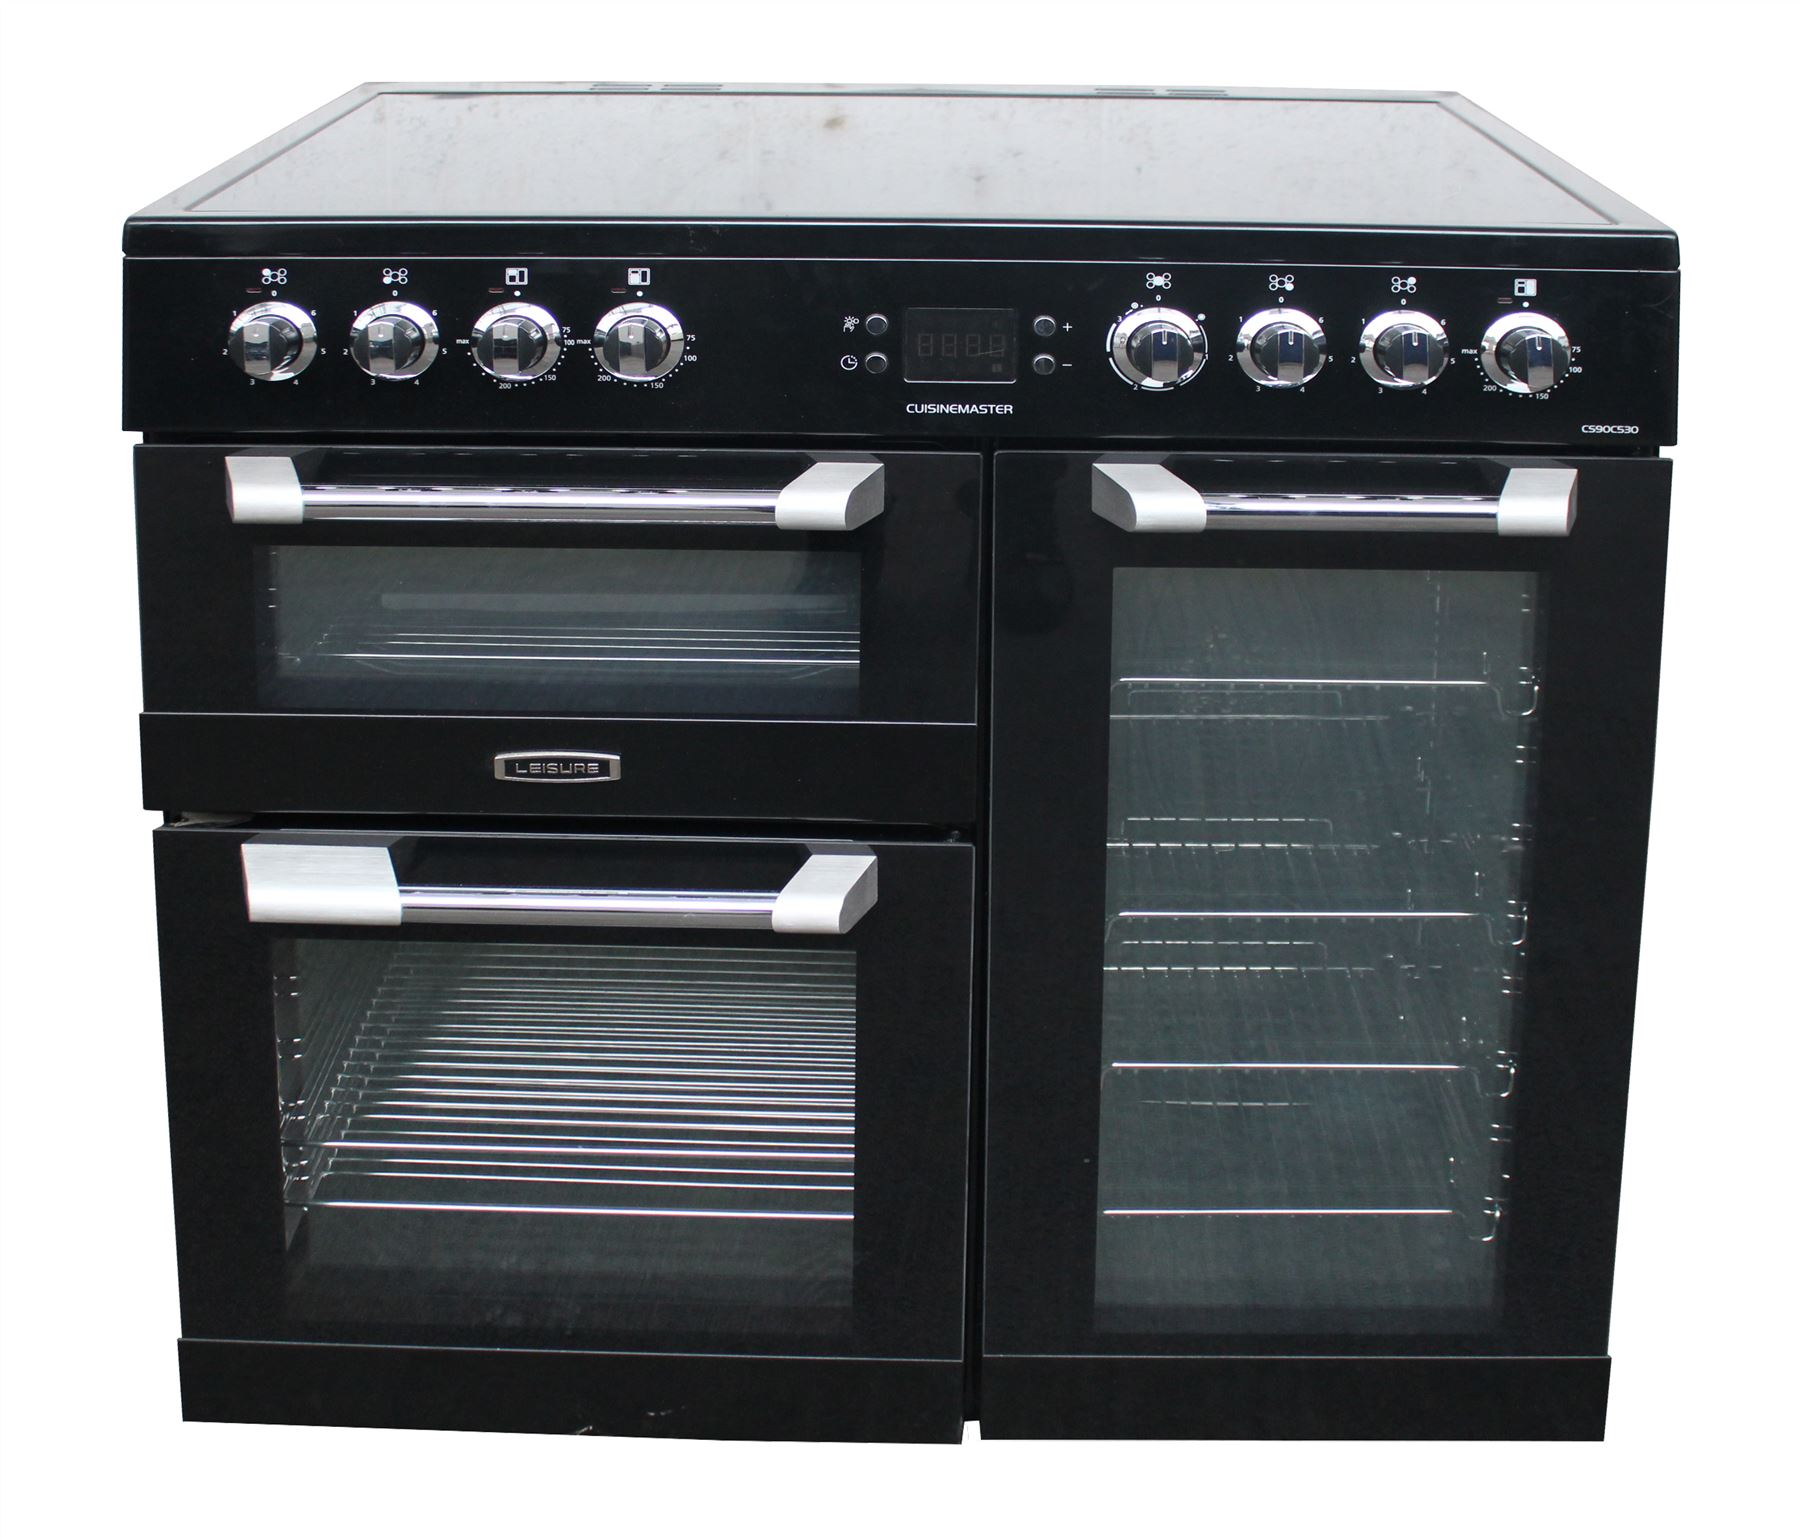 Leisure Cuisinemaster Cs90c530k 90 Cm Electric Range